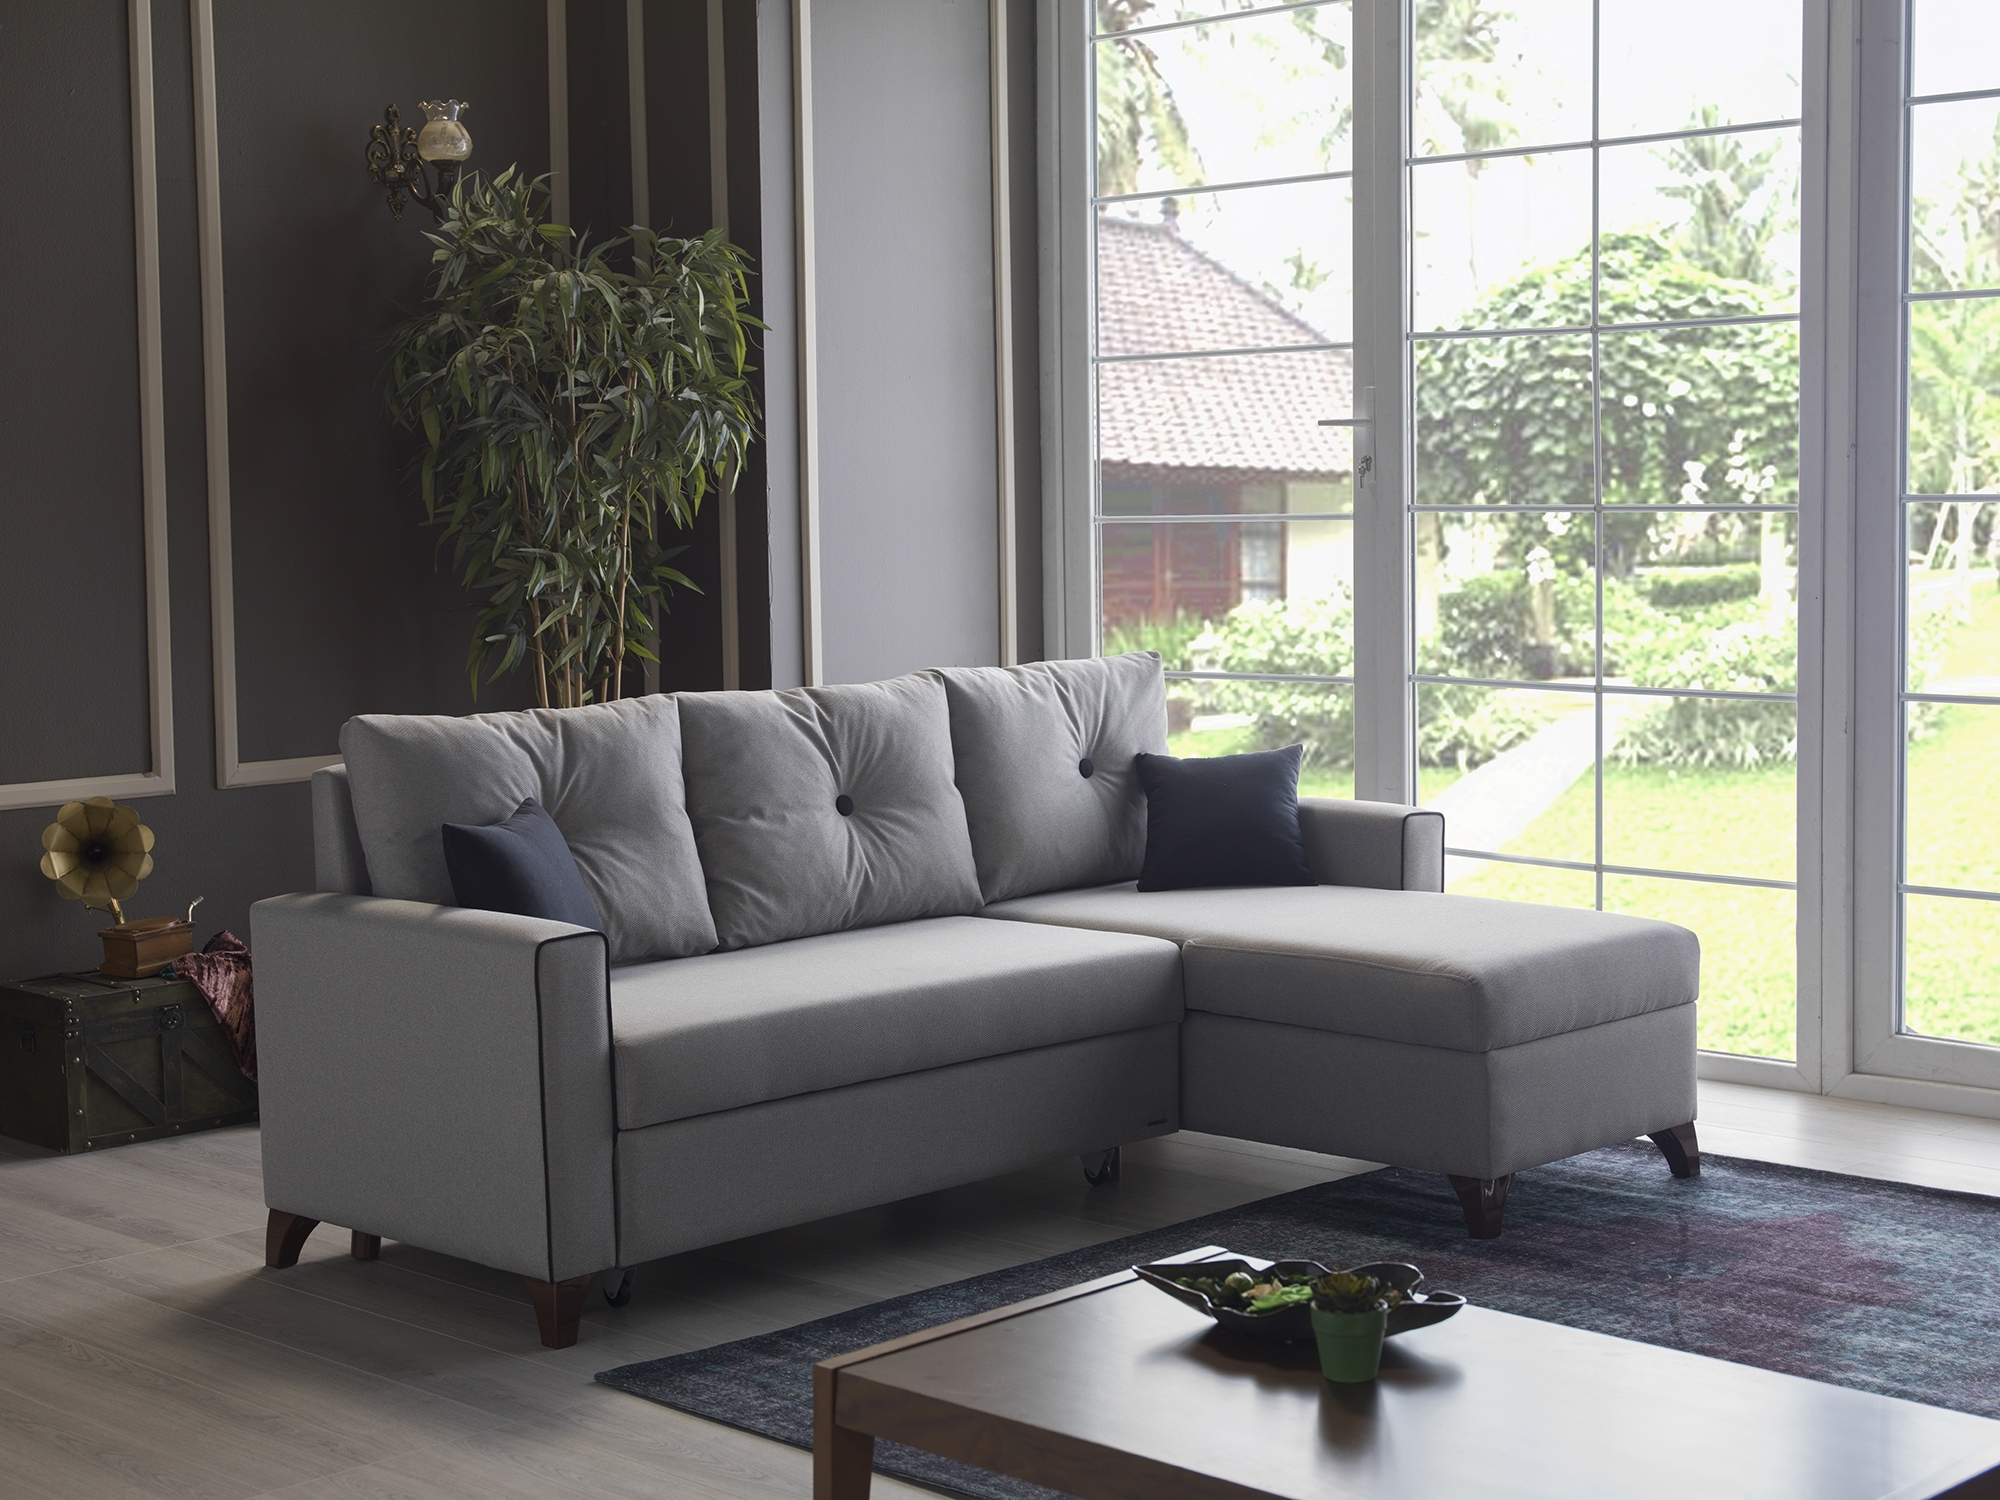 Sealy Sectional Sofa Bed | Baci Living Room In Lucy Dark Grey 2 Piece Sectionals With Raf Chaise (Image 21 of 25)